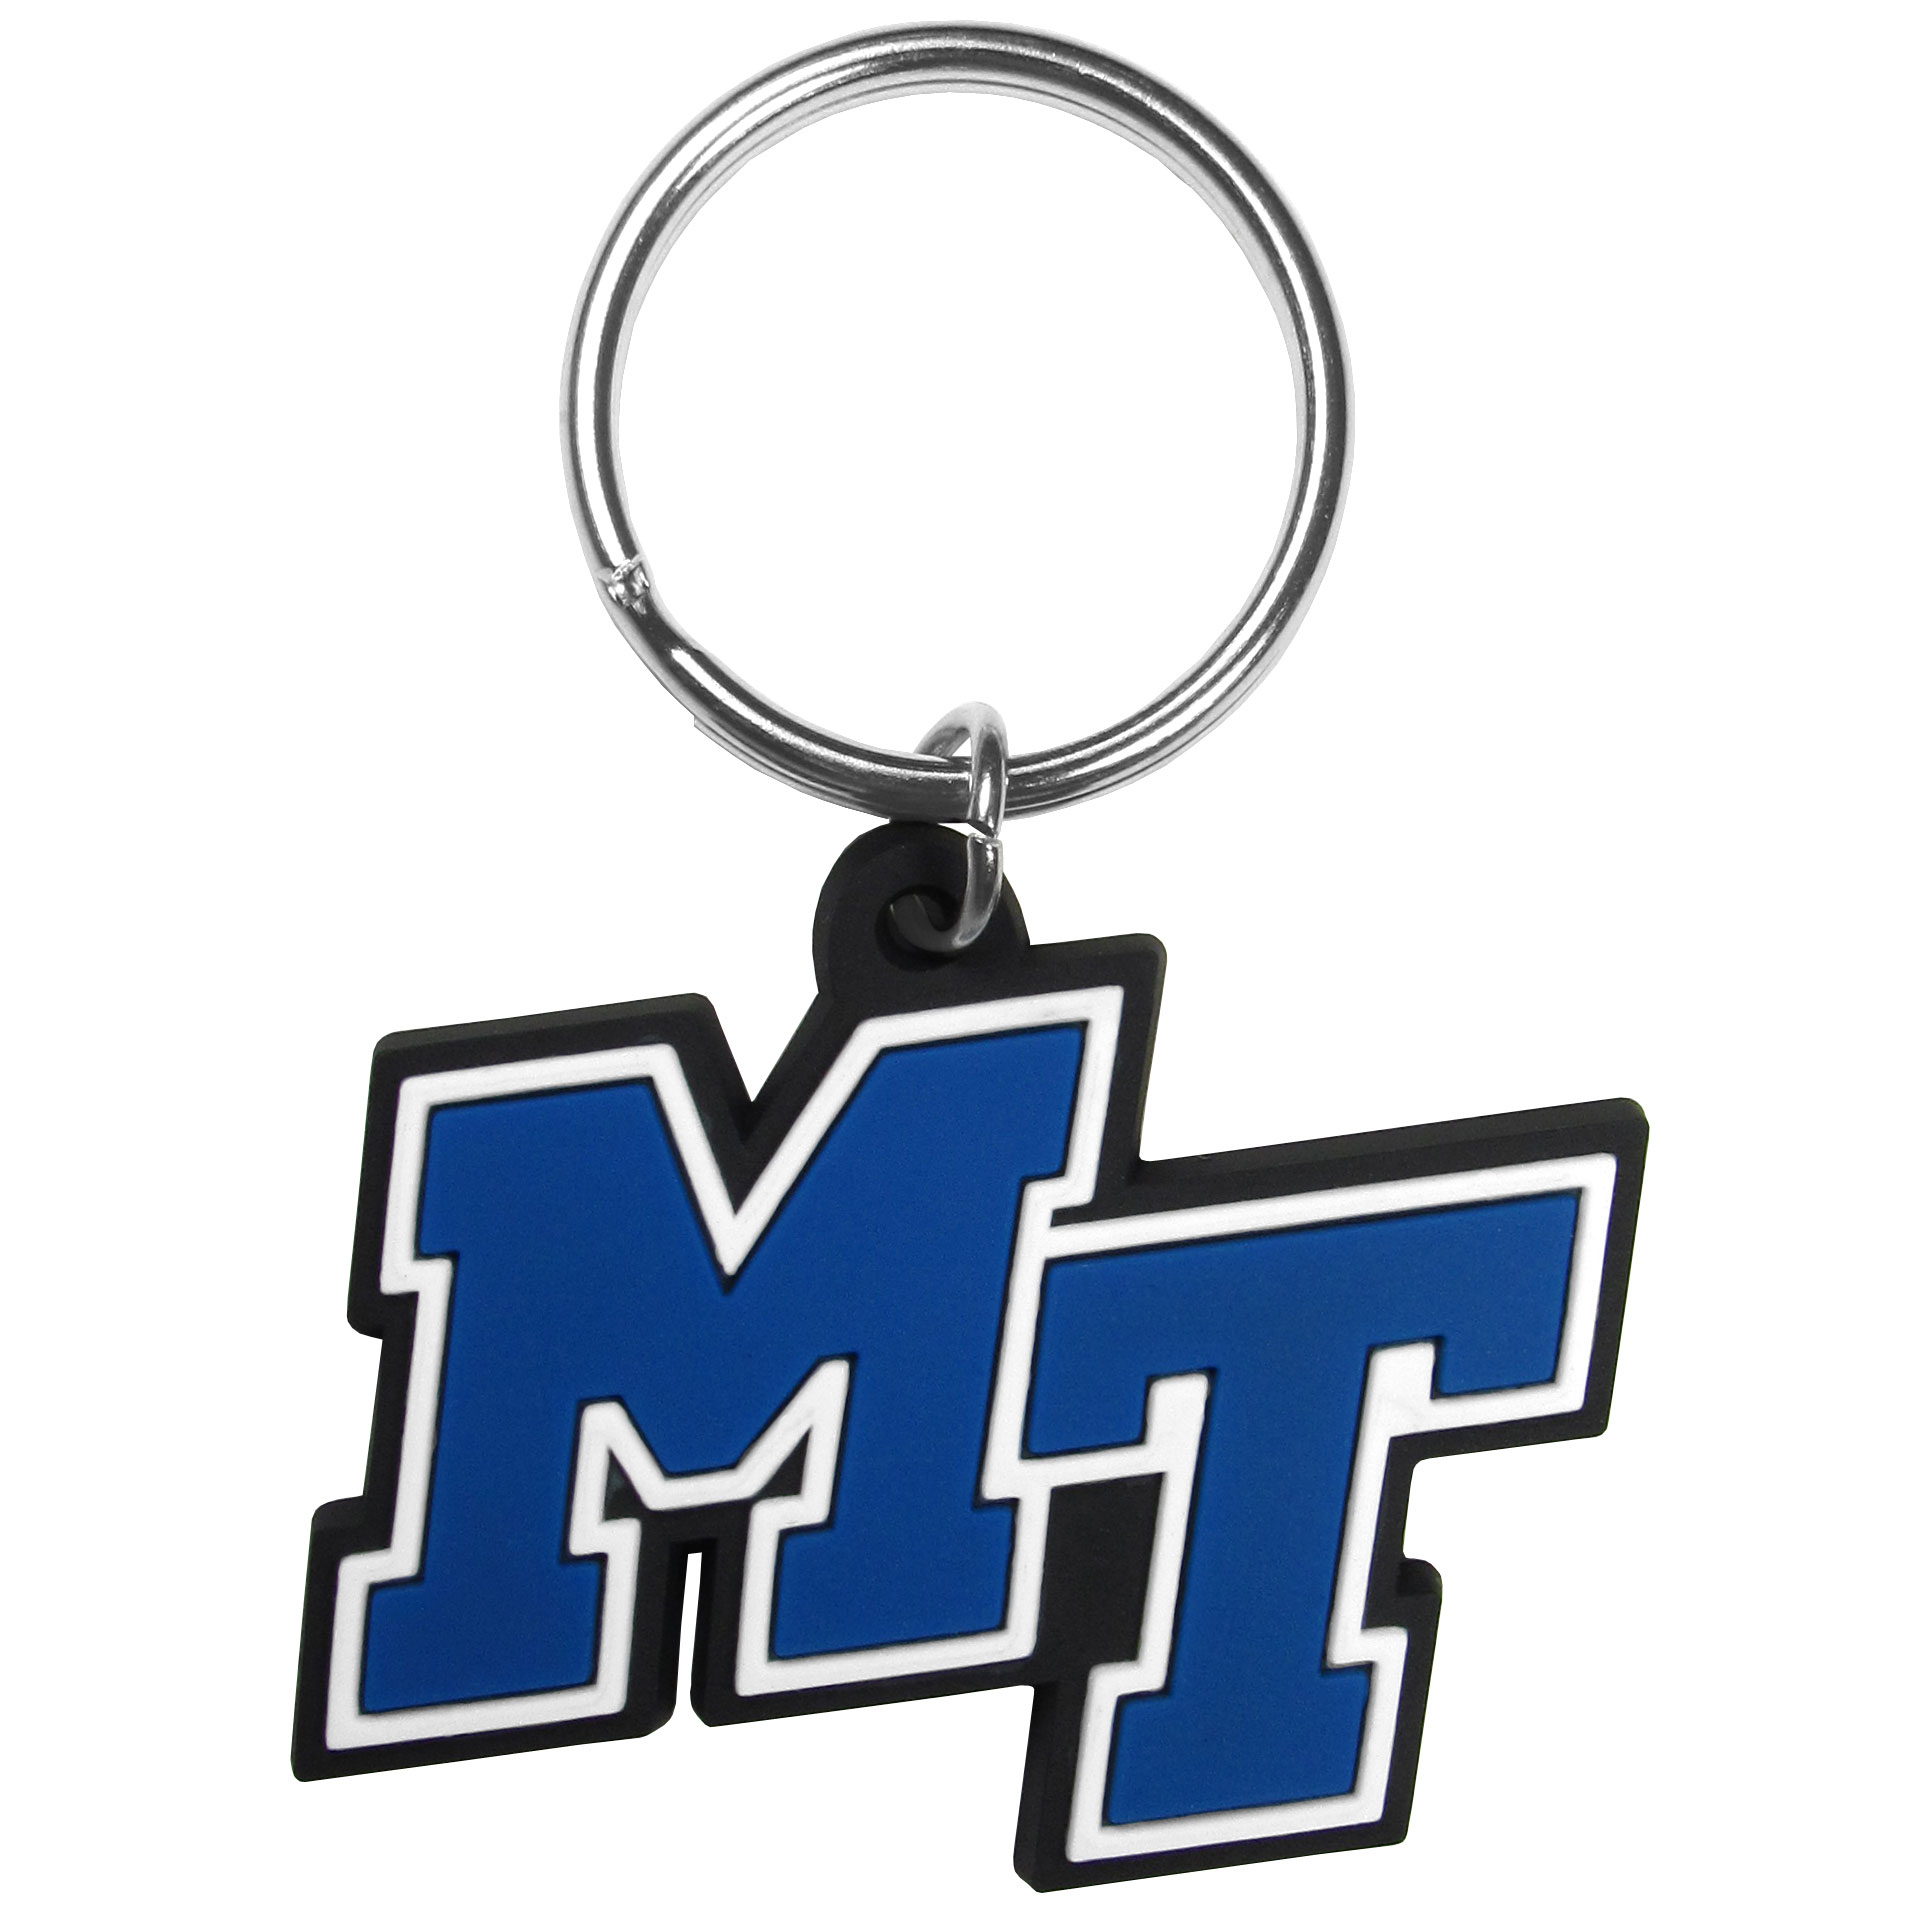 Mid Tennessee St. Blue Raiders Flex Key Chain - Our fun, flexible Mid Tennessee St. Blue Raiders key chains are made of a rubbery material that is layered to create a bright, textured logo.